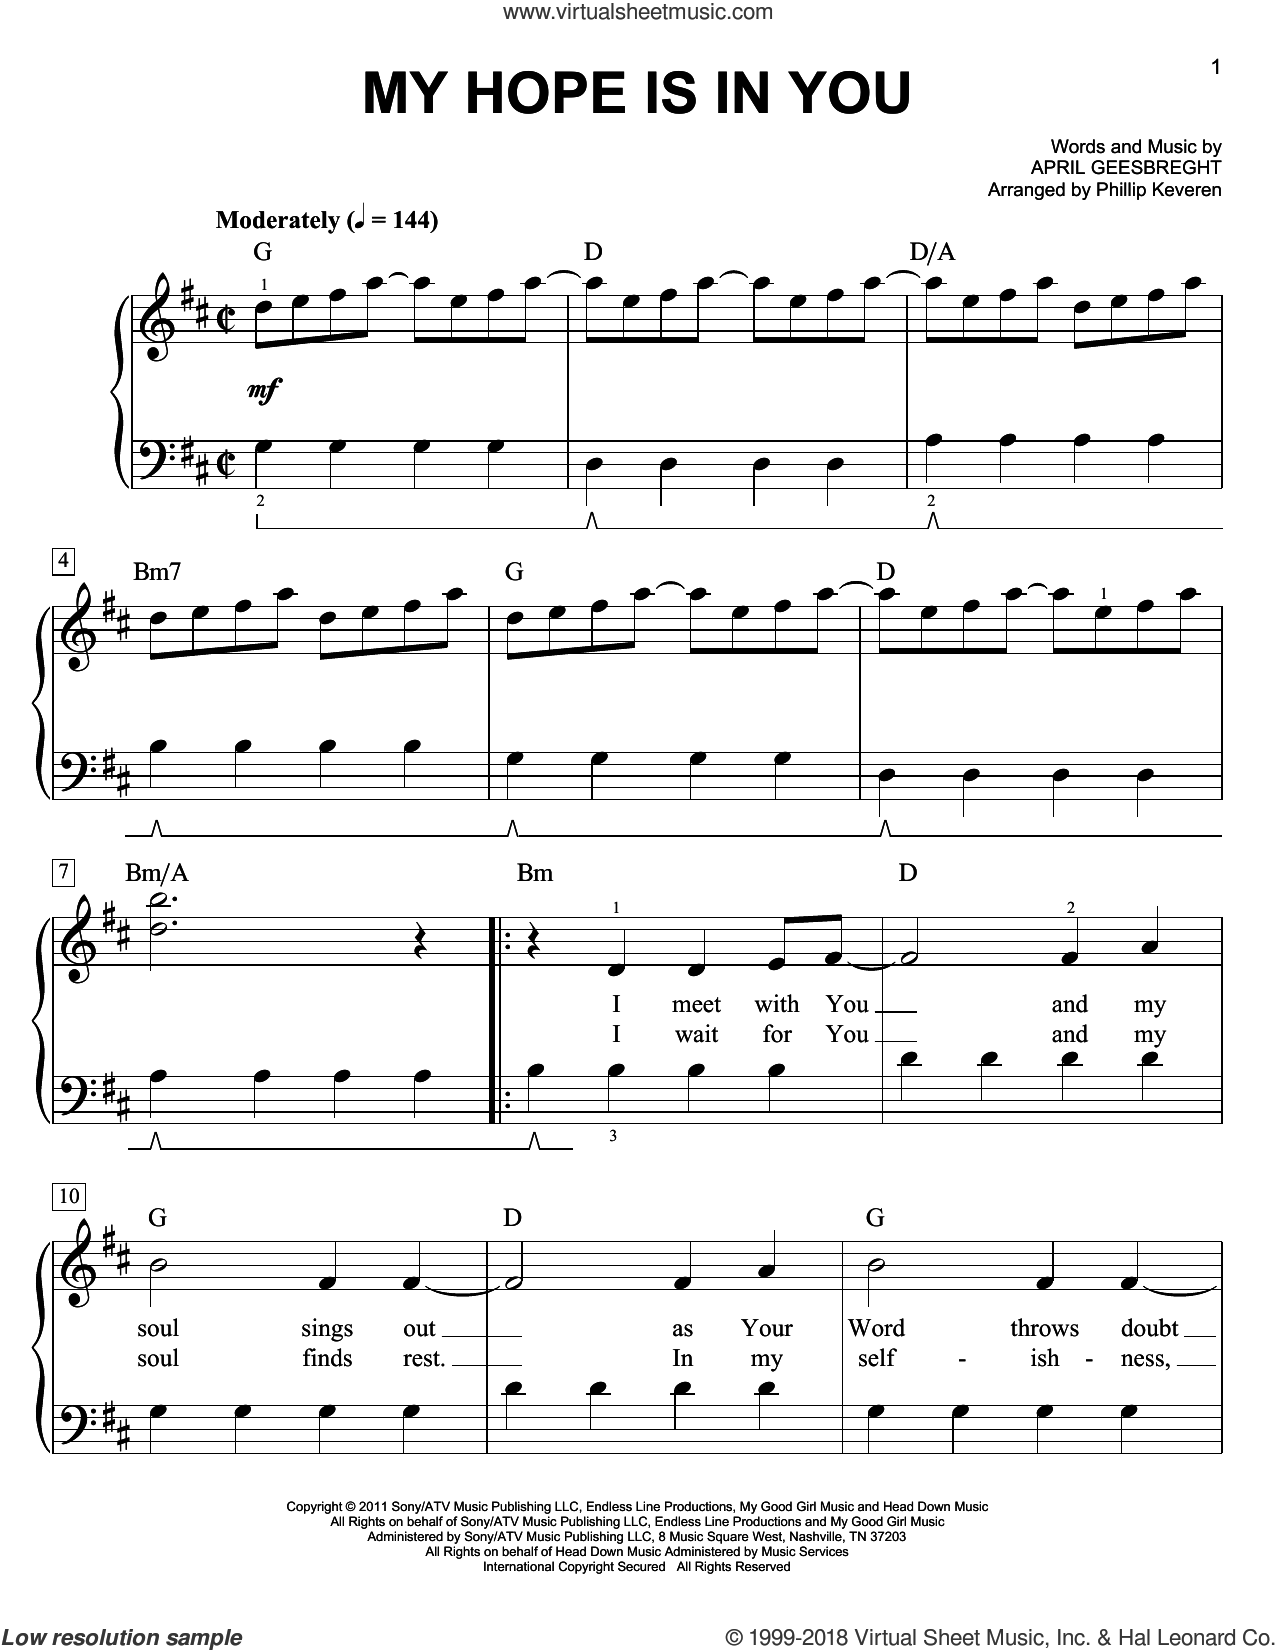 My Hope Is In You sheet music for piano solo by April Geesbreght and Phillip Keveren, easy skill level